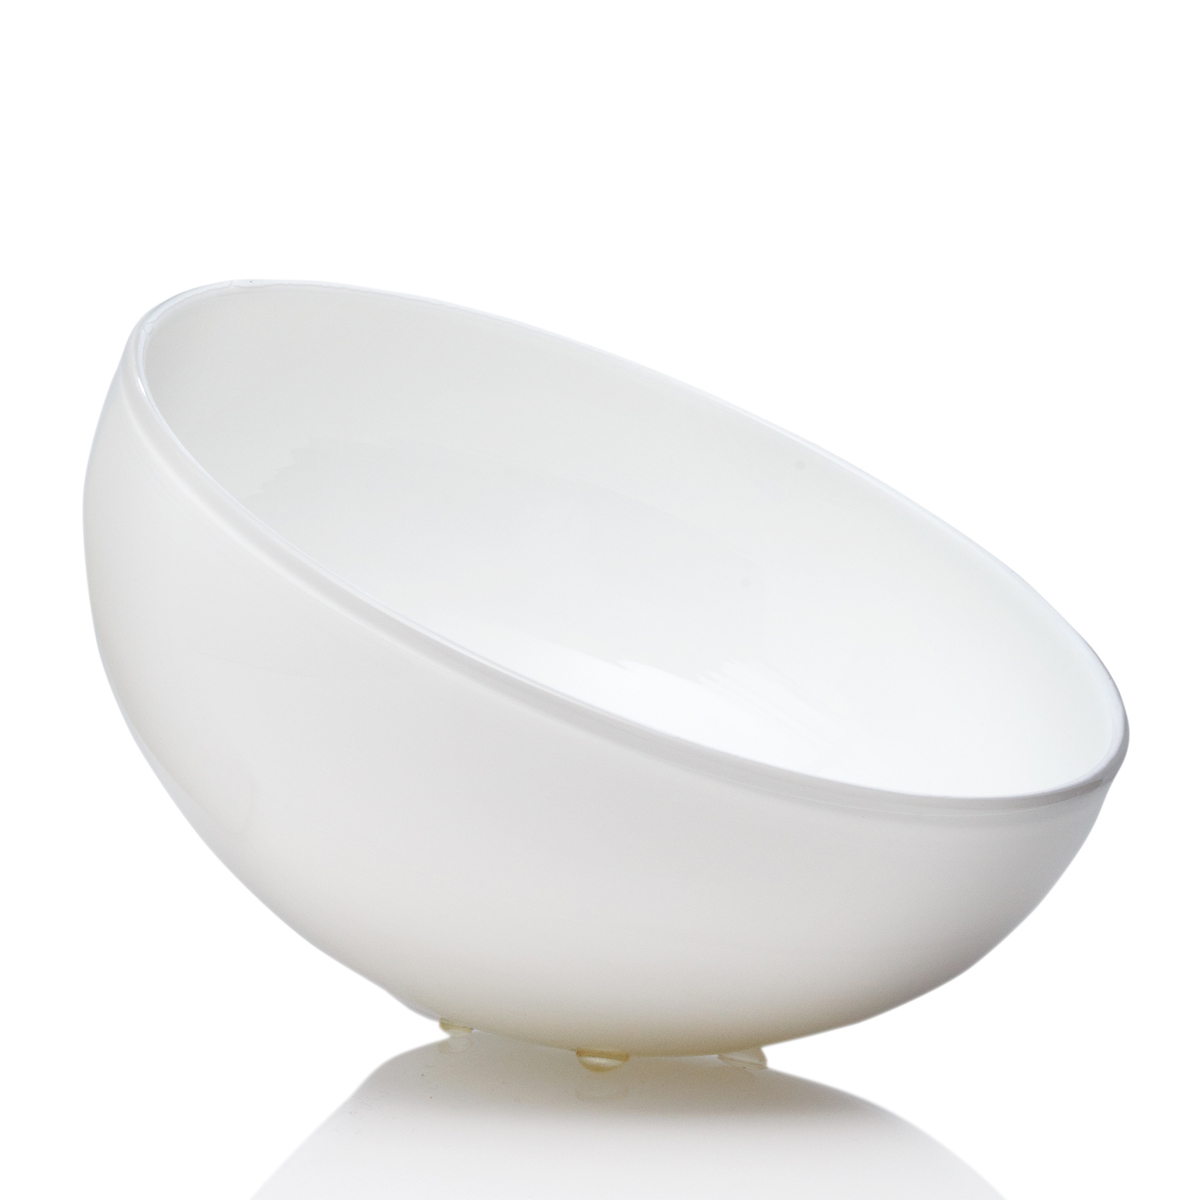 1. White-Ligne-Bowl-SM copy.jpg